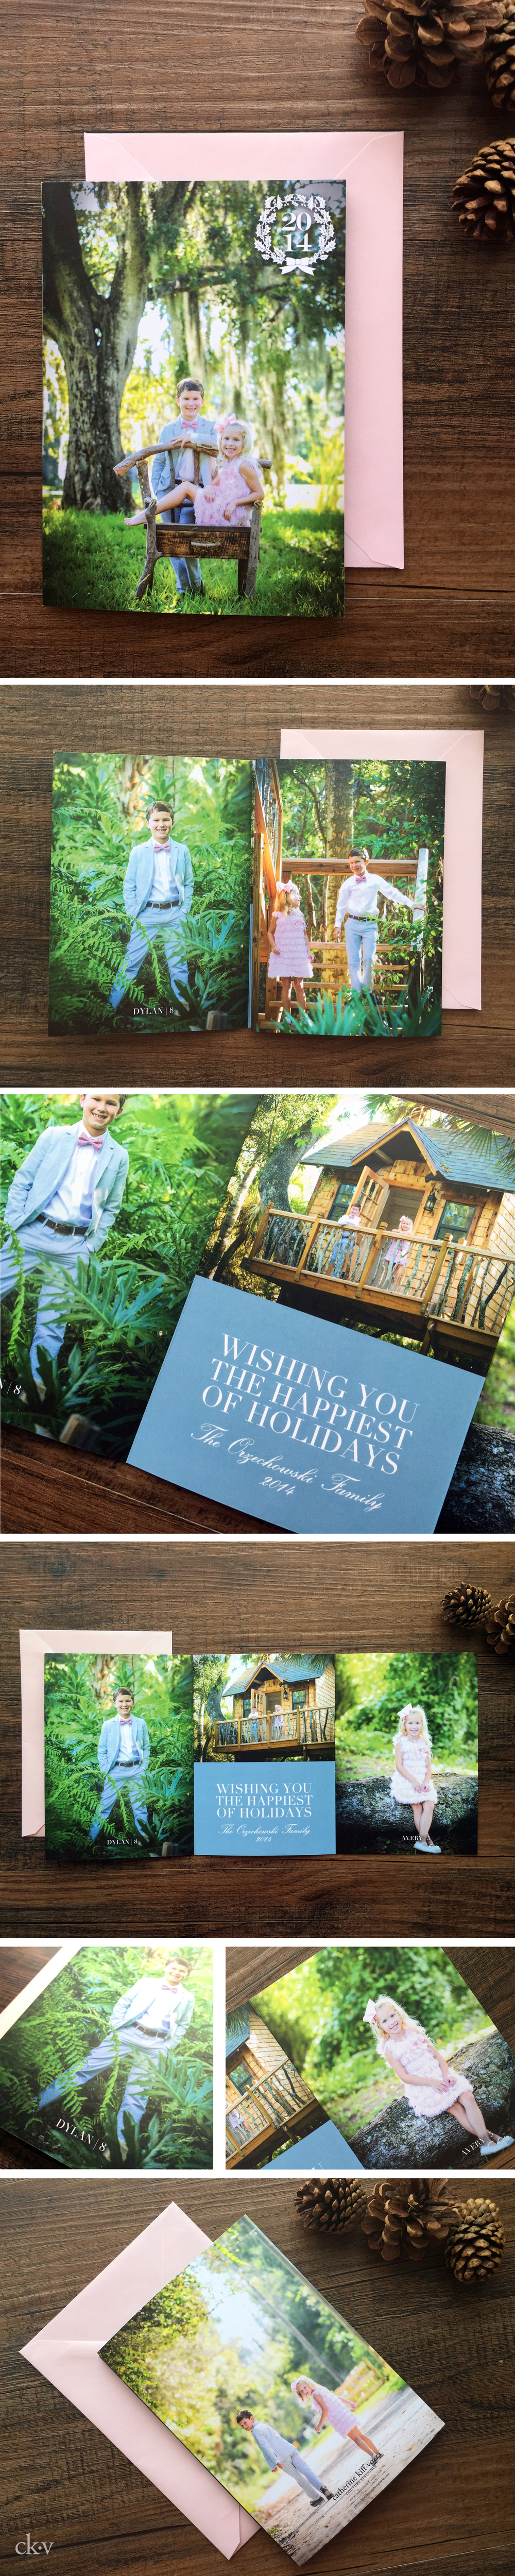 modern southern style holiday photo card